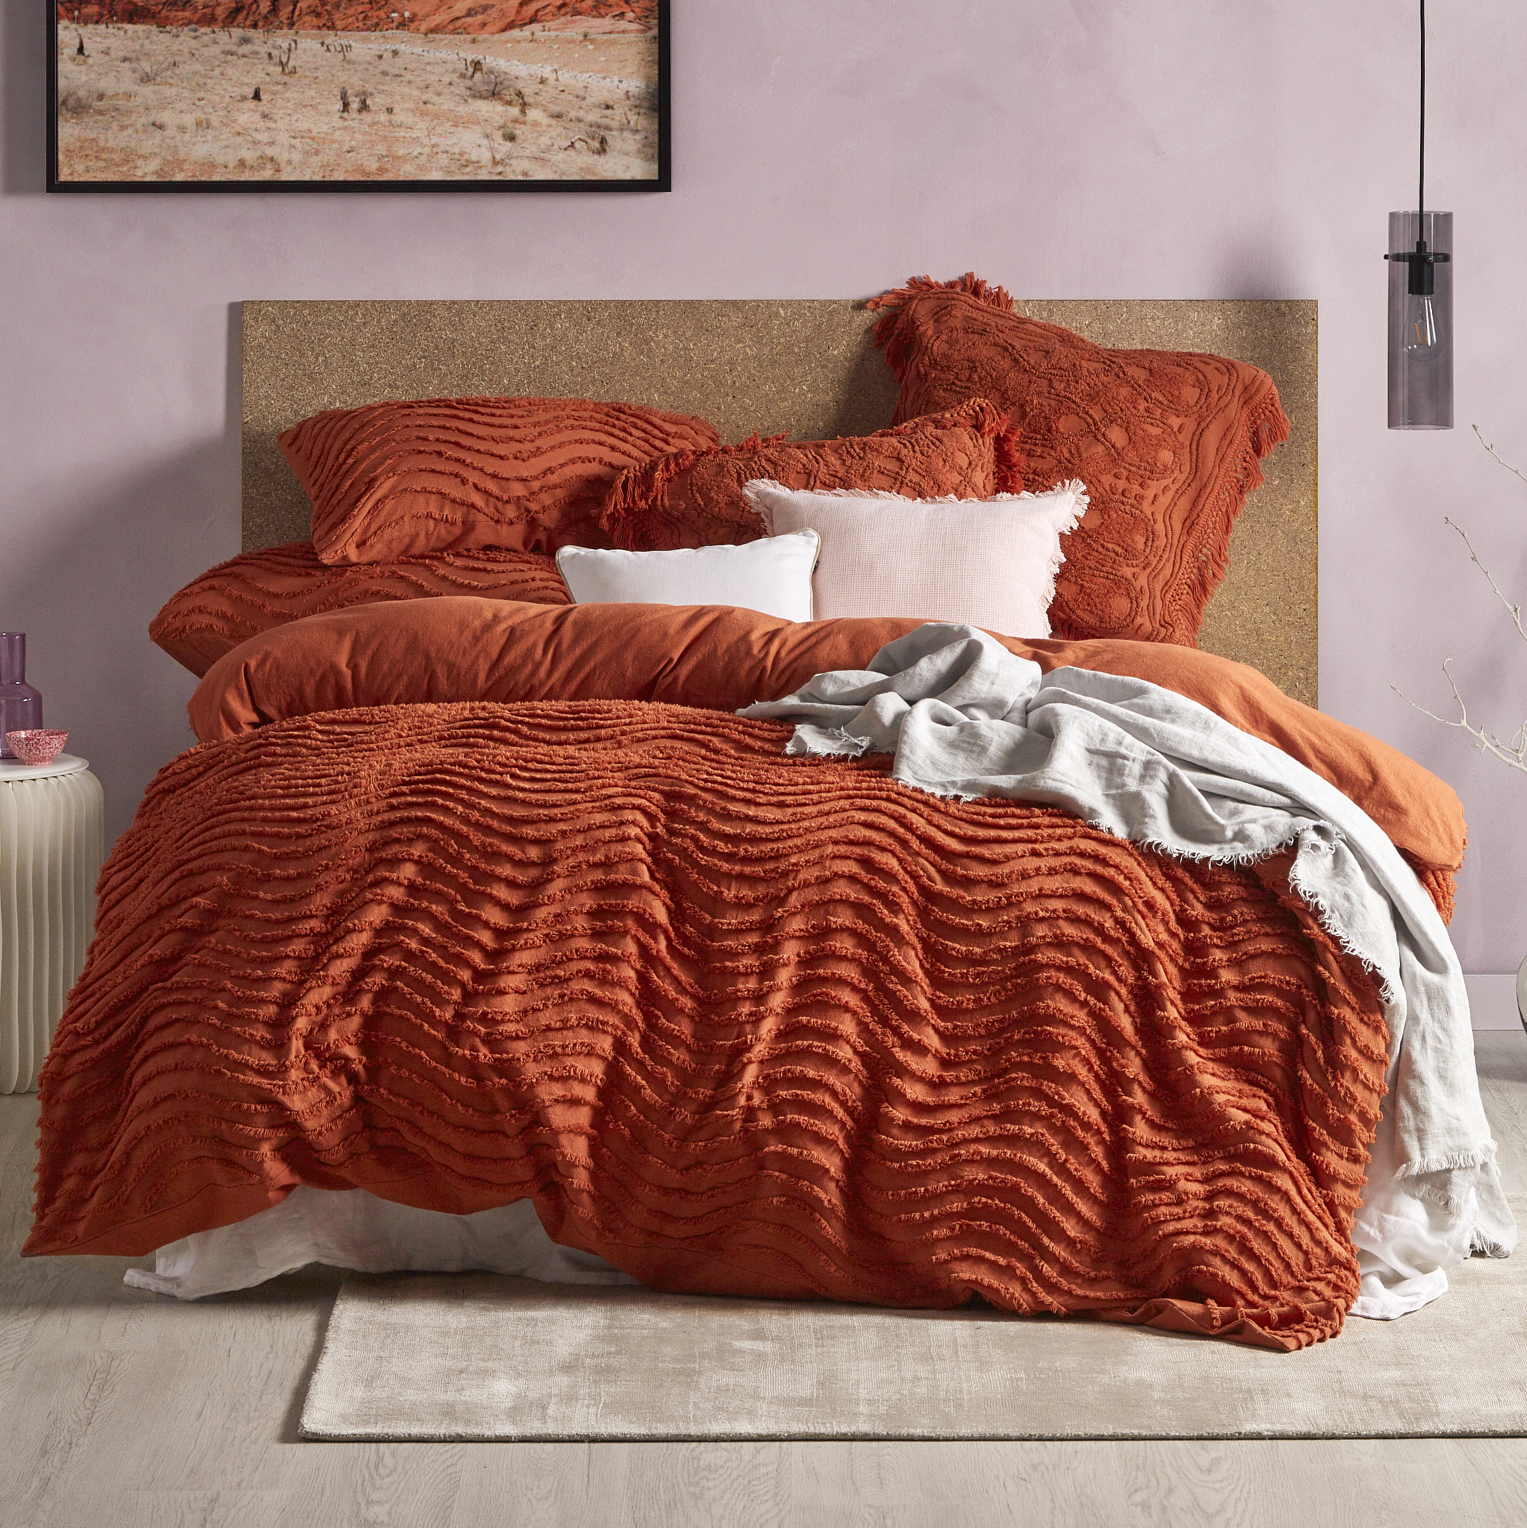 Temple Webster Rust Delilah Quilt Cover Set